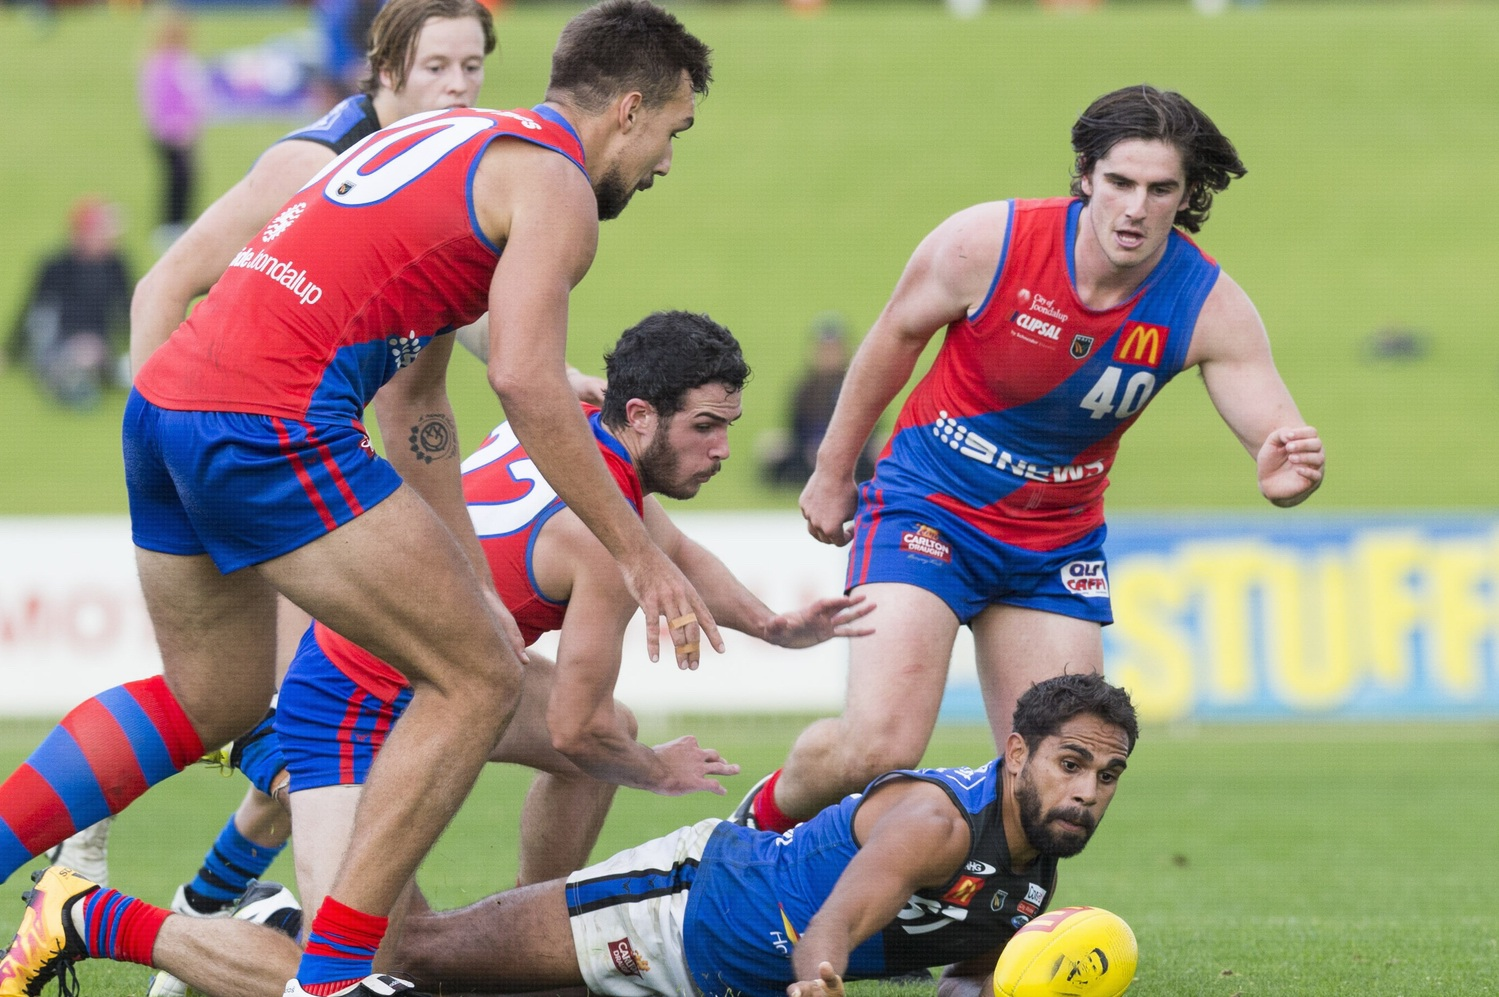 West Perth's Seva Mozhaev, Kris Shannon and Aidan Lynch put pressure on East Perth's Lewis Jetta. Picture: Dan White